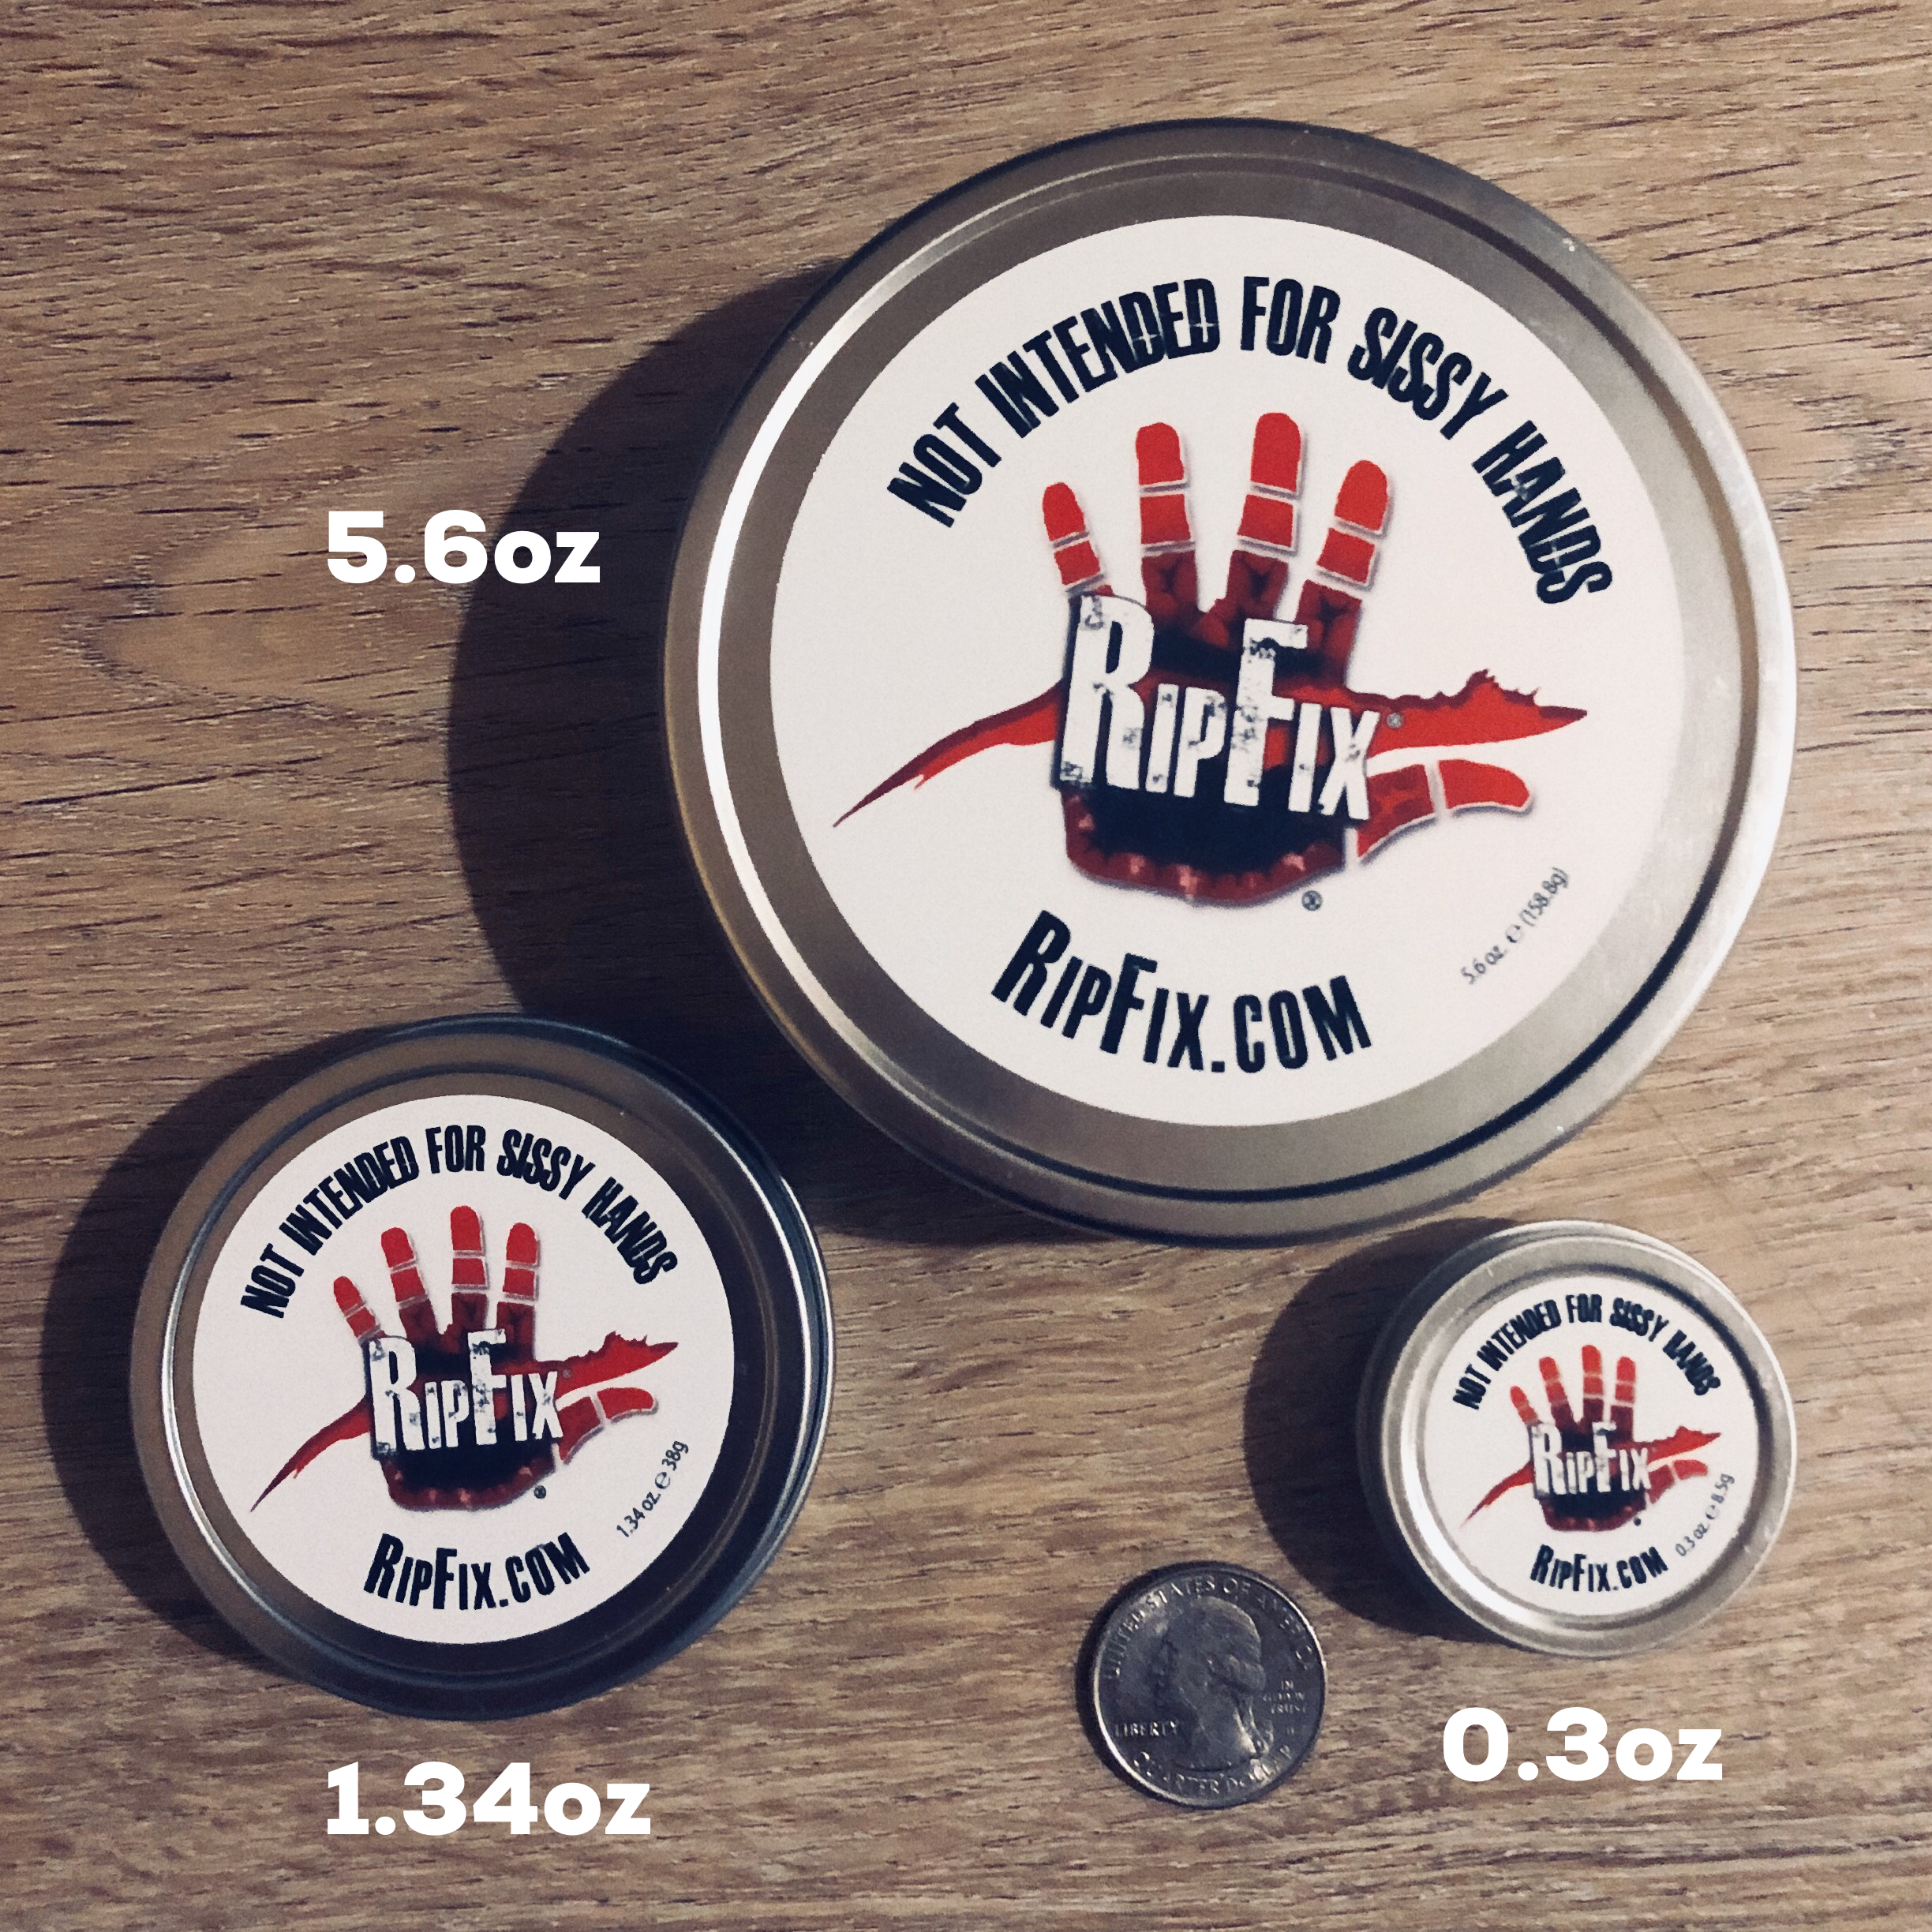 How To Heal Calluses, Blisters, and Skin Rips - RipFix  - The Super Tin (5.6oz)